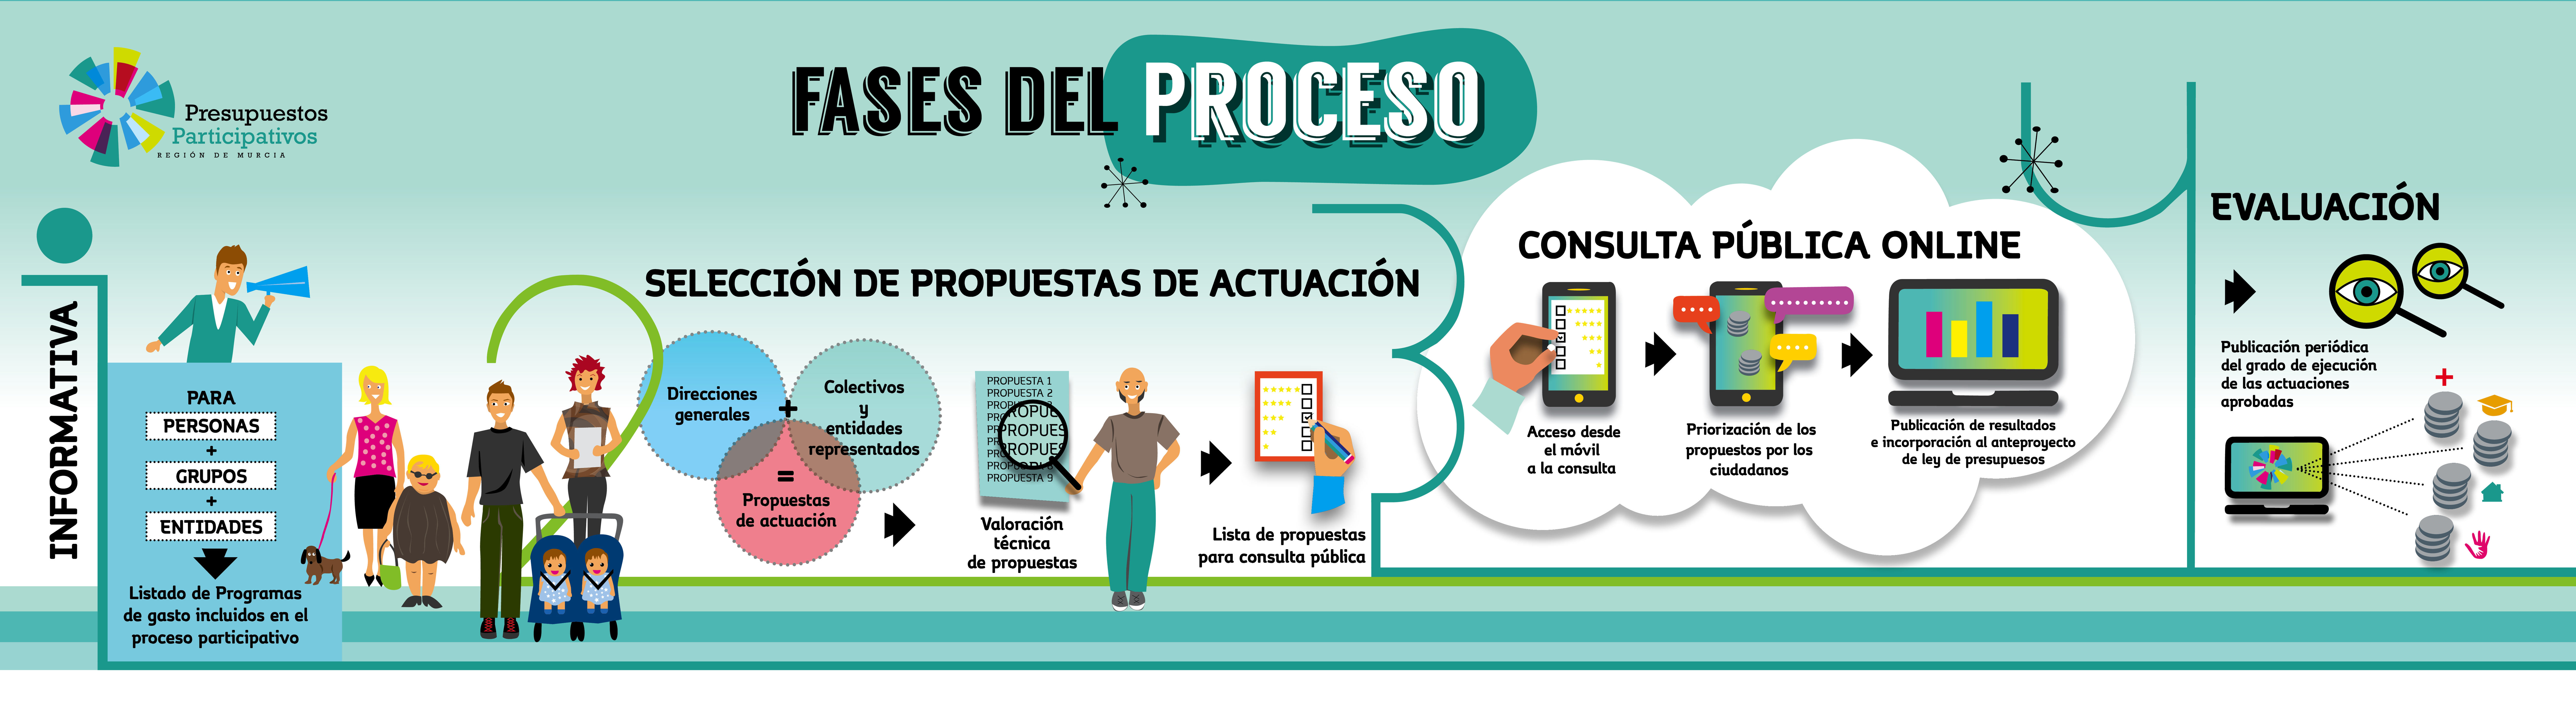 Fases-proceso